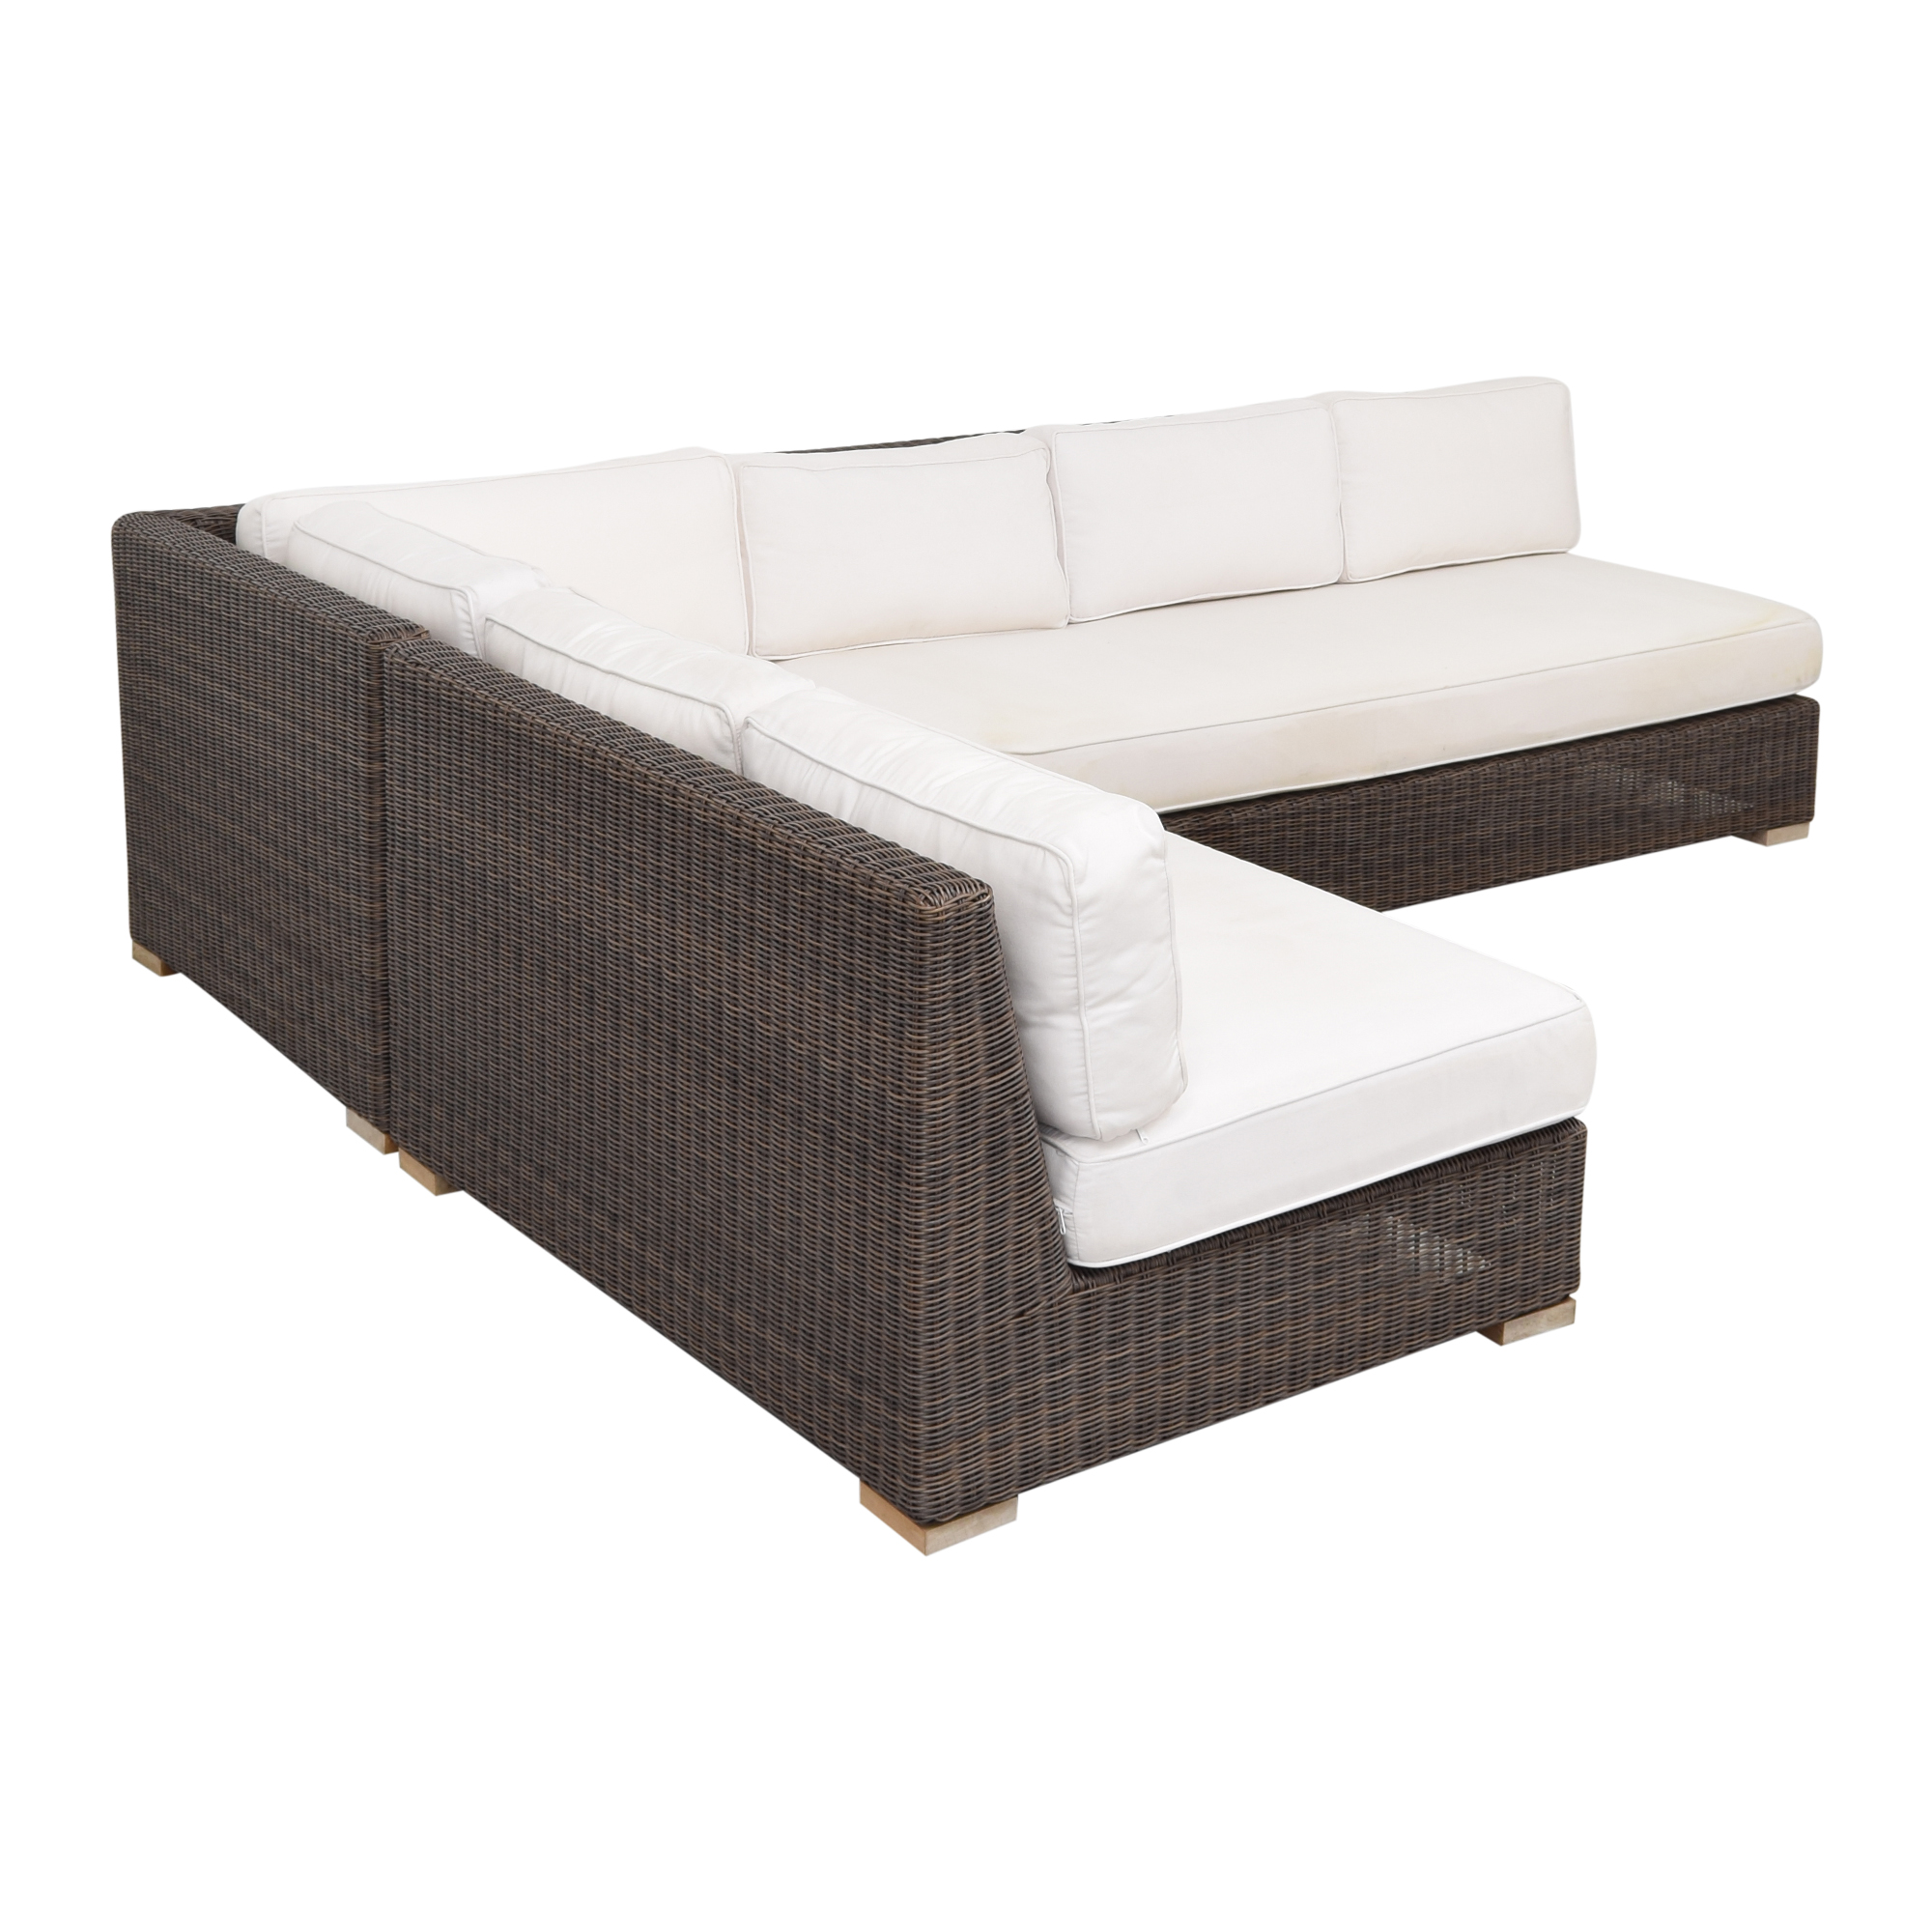 Restoration Hardware Biscayne Classic Outdoor Sectional / Sofas